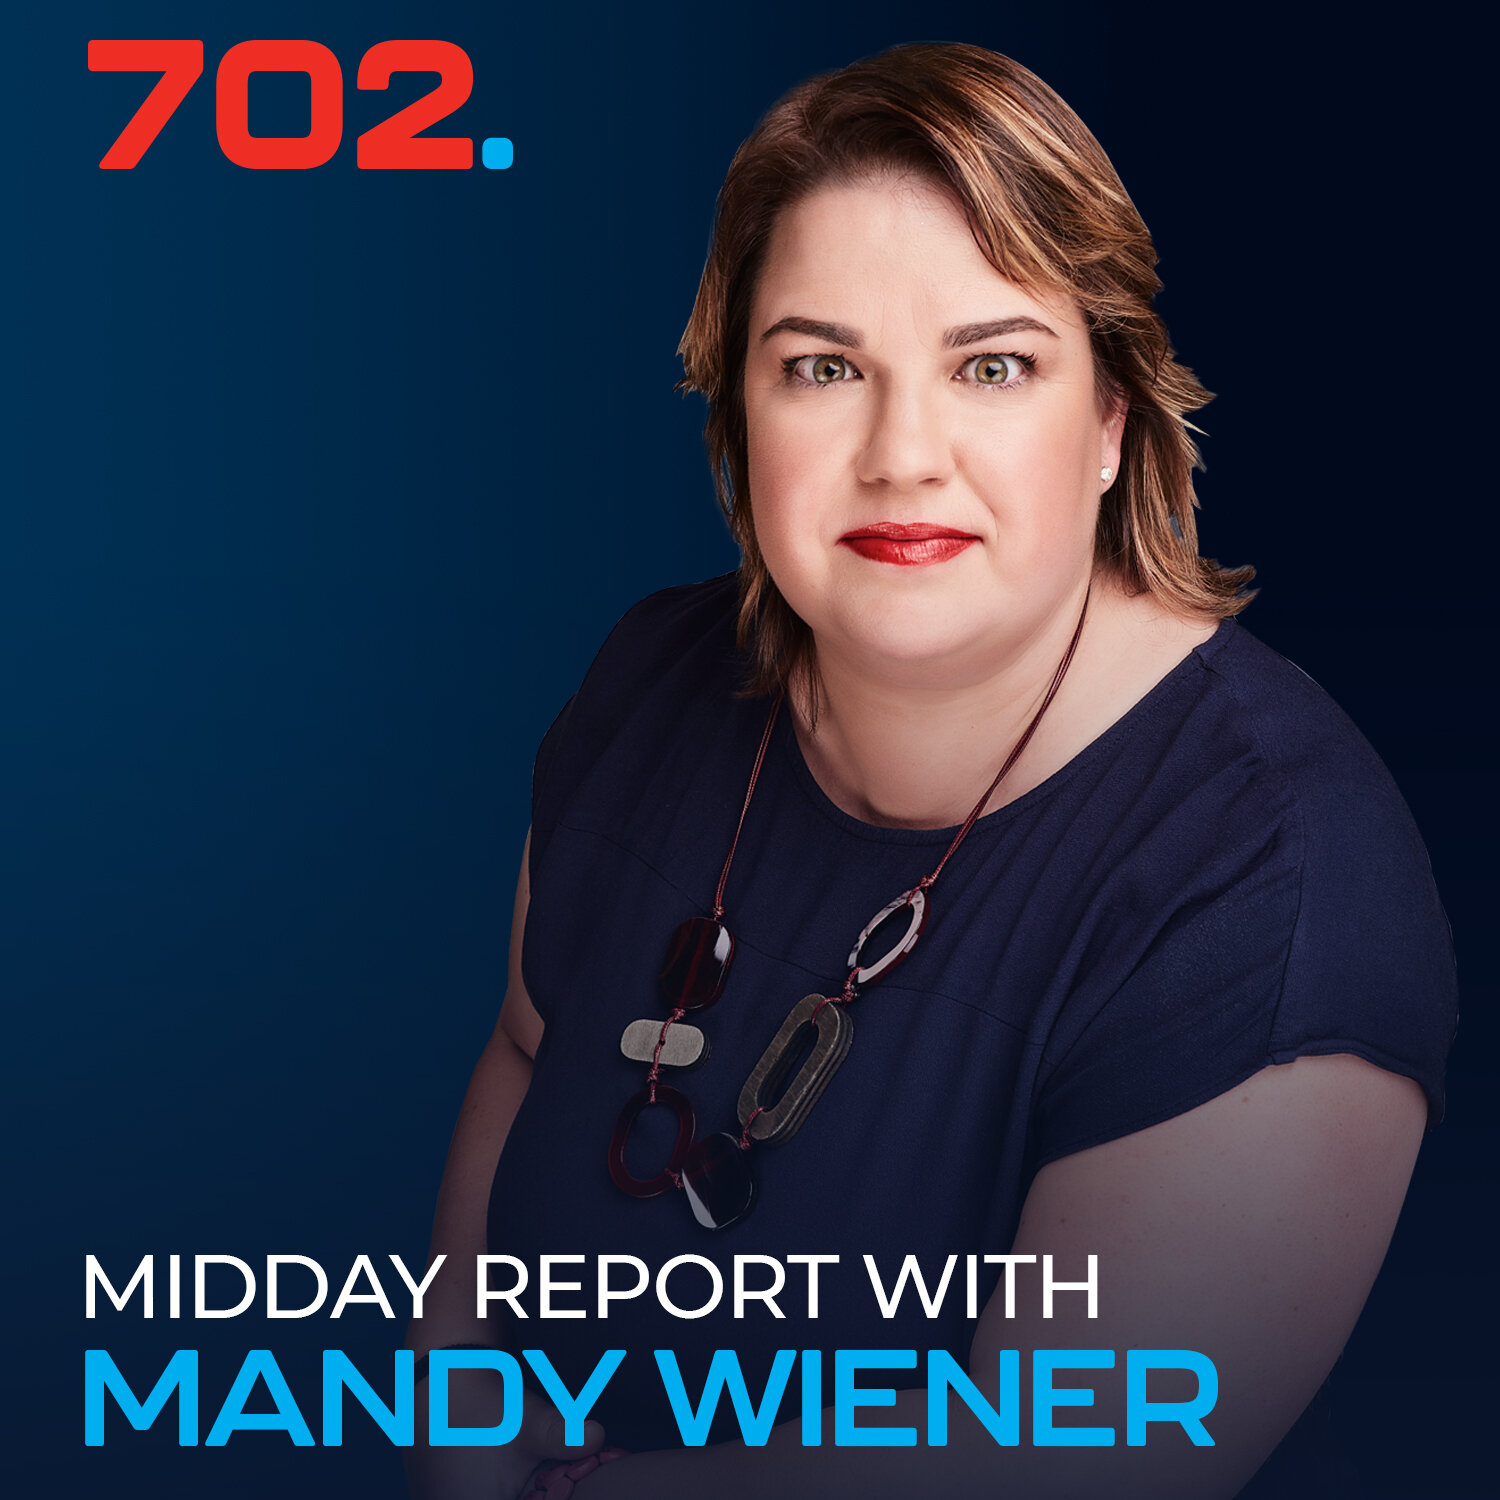 The Midday Report